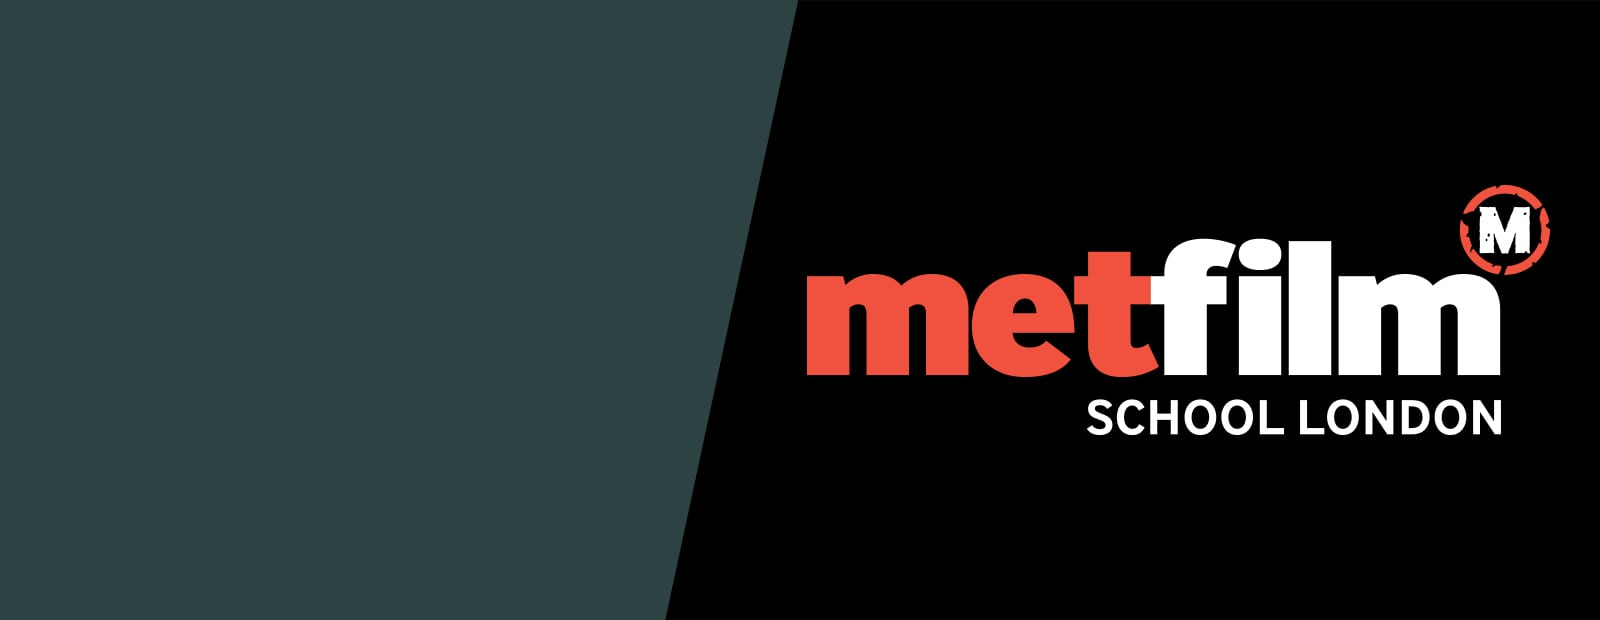 STUDYING AT<br>METFILM SCHOOL LONDON<br>IN 2020